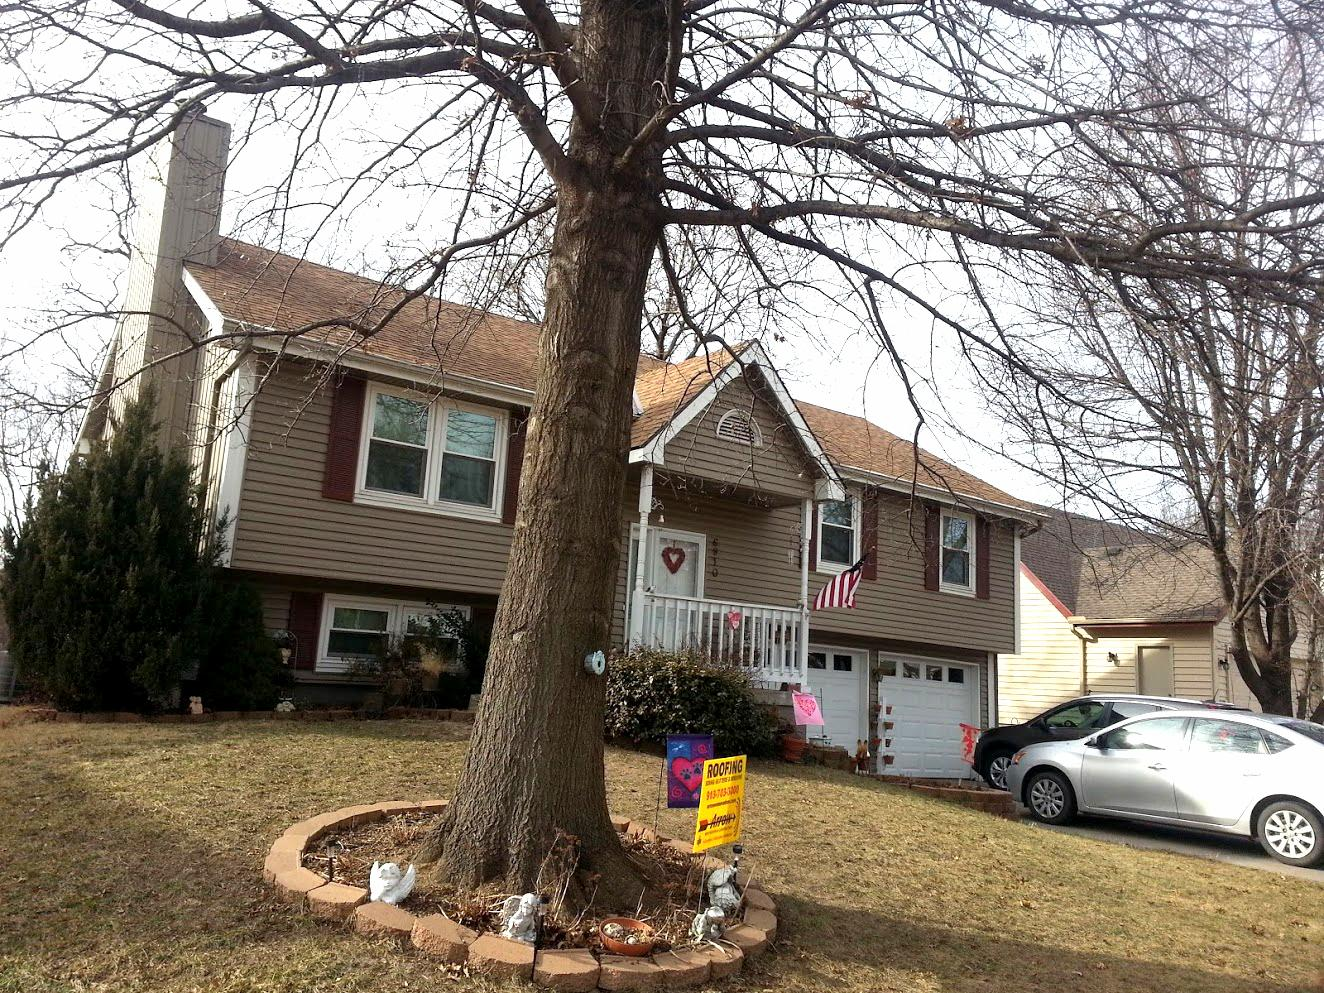 Roof Replacement Replace Shingles And Add Gutter Screens In Pleasant Valley Mo Replace